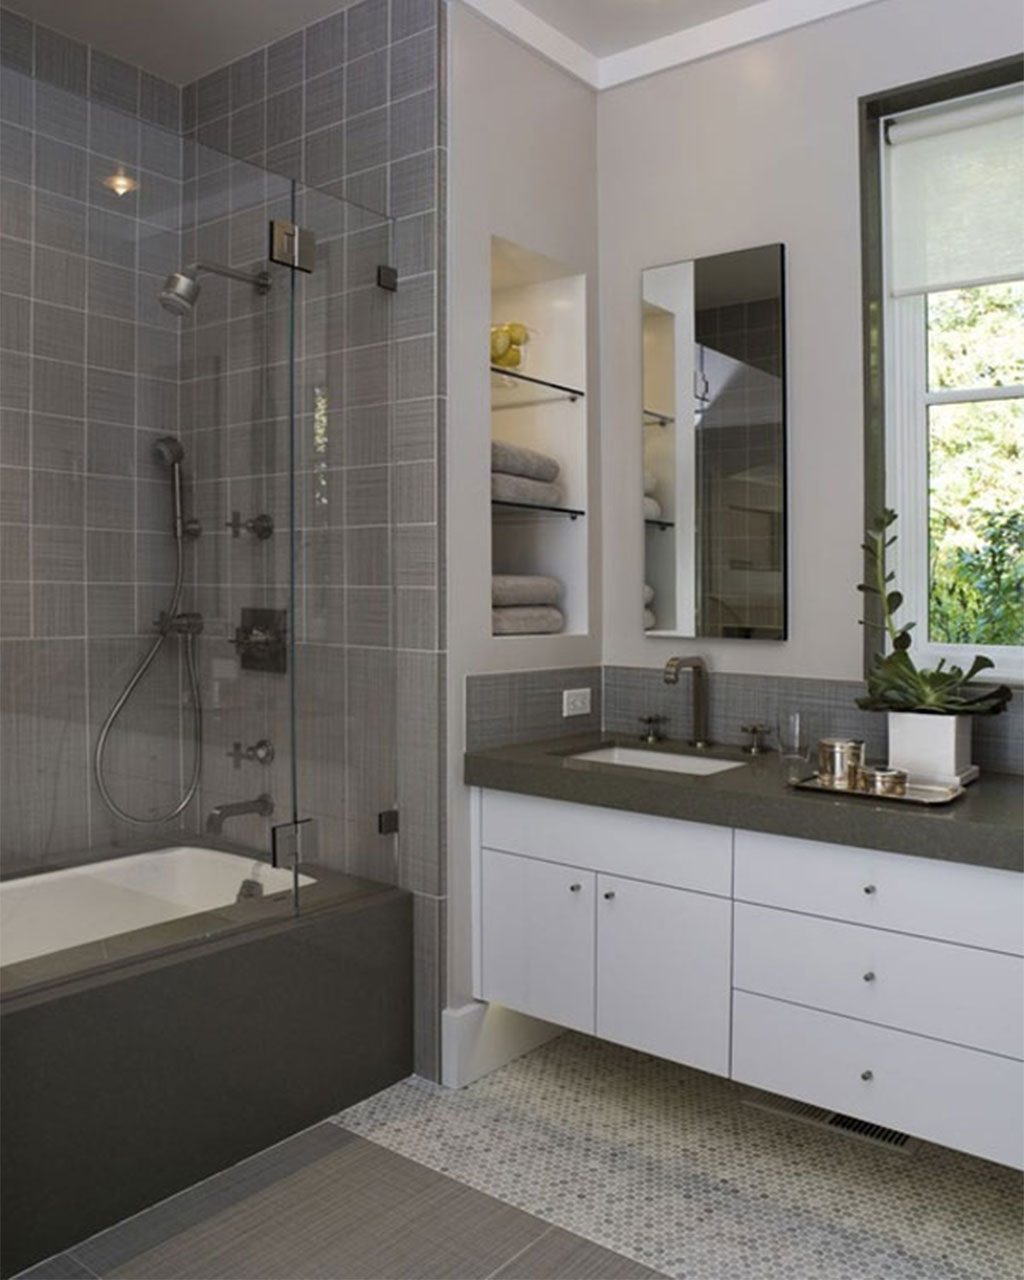 Lovable Small Cheap Bathroom Ideas Bathroom Ideas On A Budget